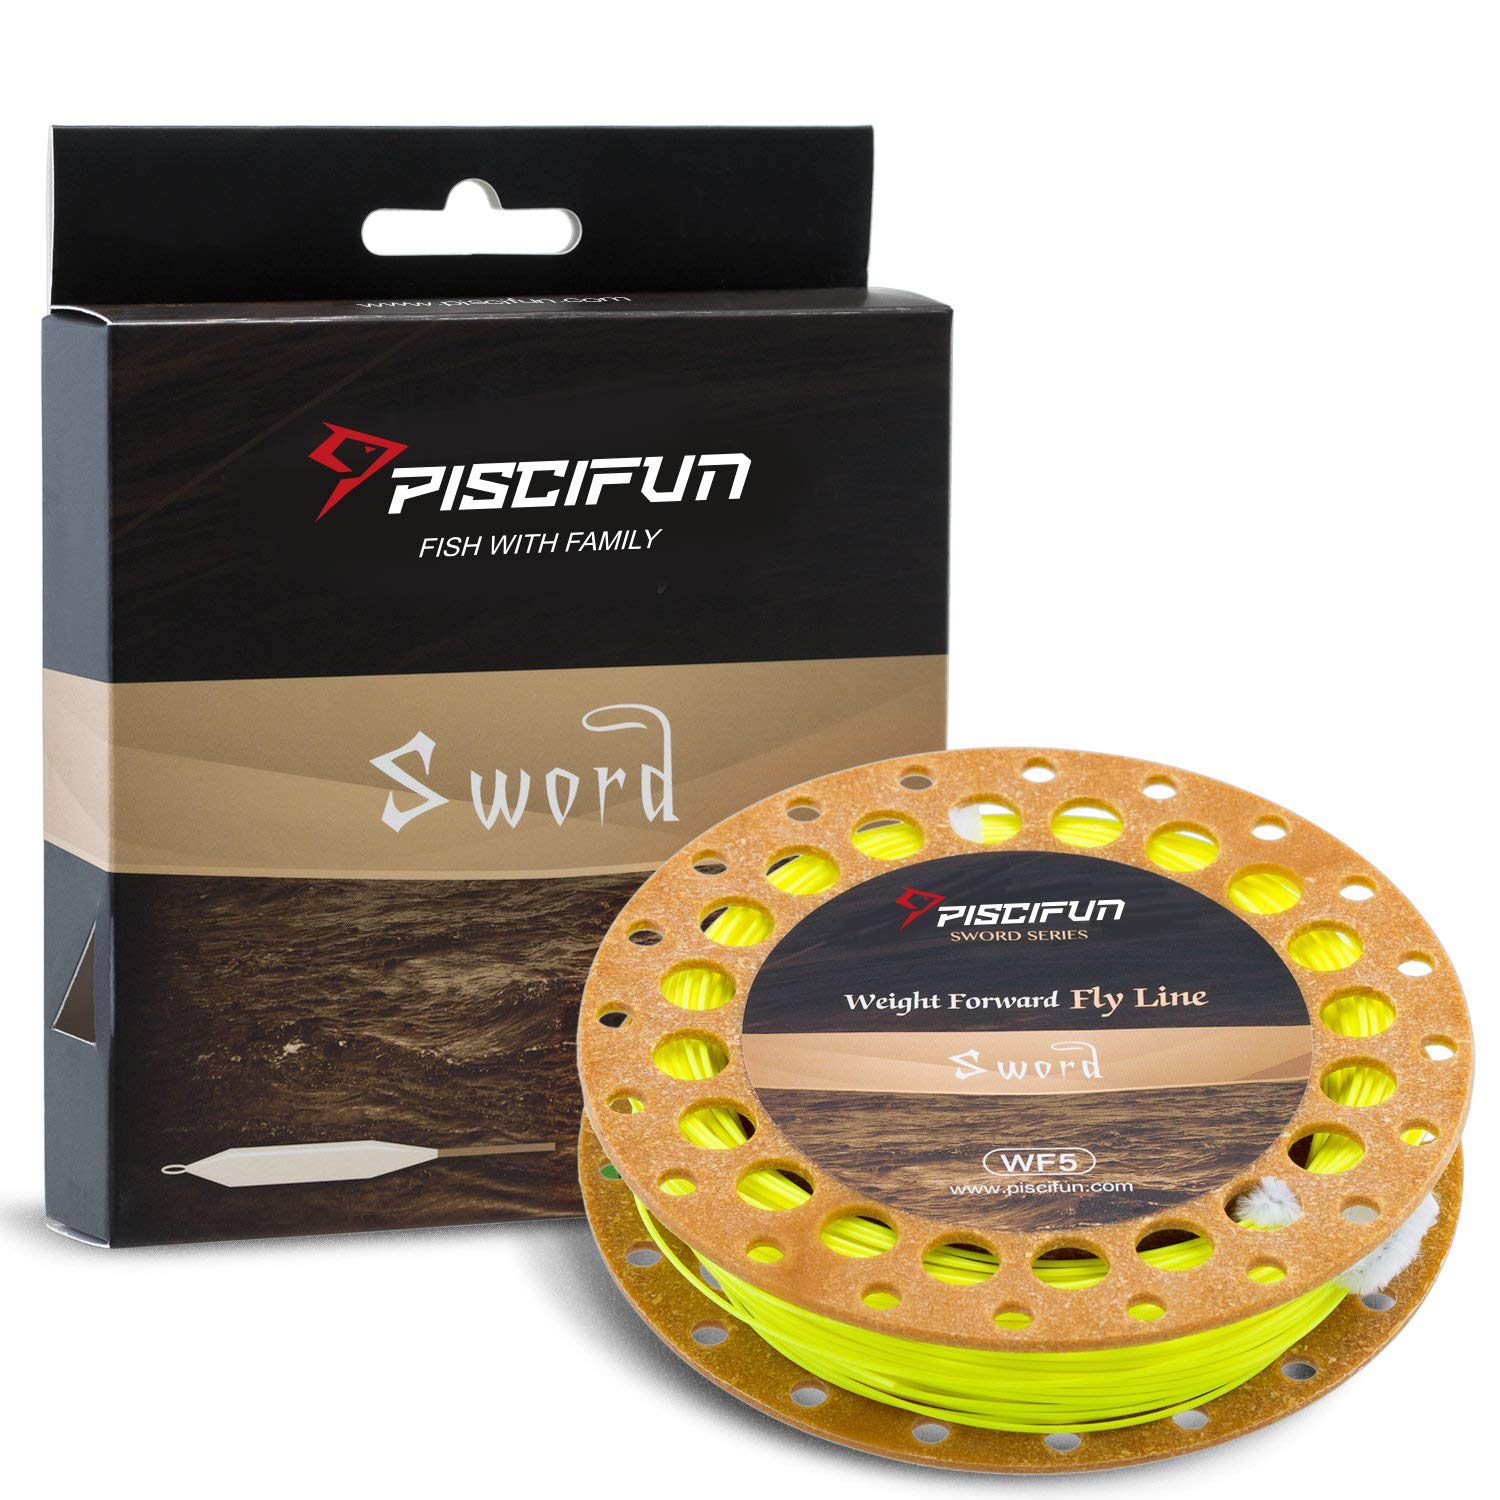 Piscifun Sword Weight Forward Floating Fly Fishing Line with Welded Loop WF2wt 90FT Fluorescent Yellow by Piscifun